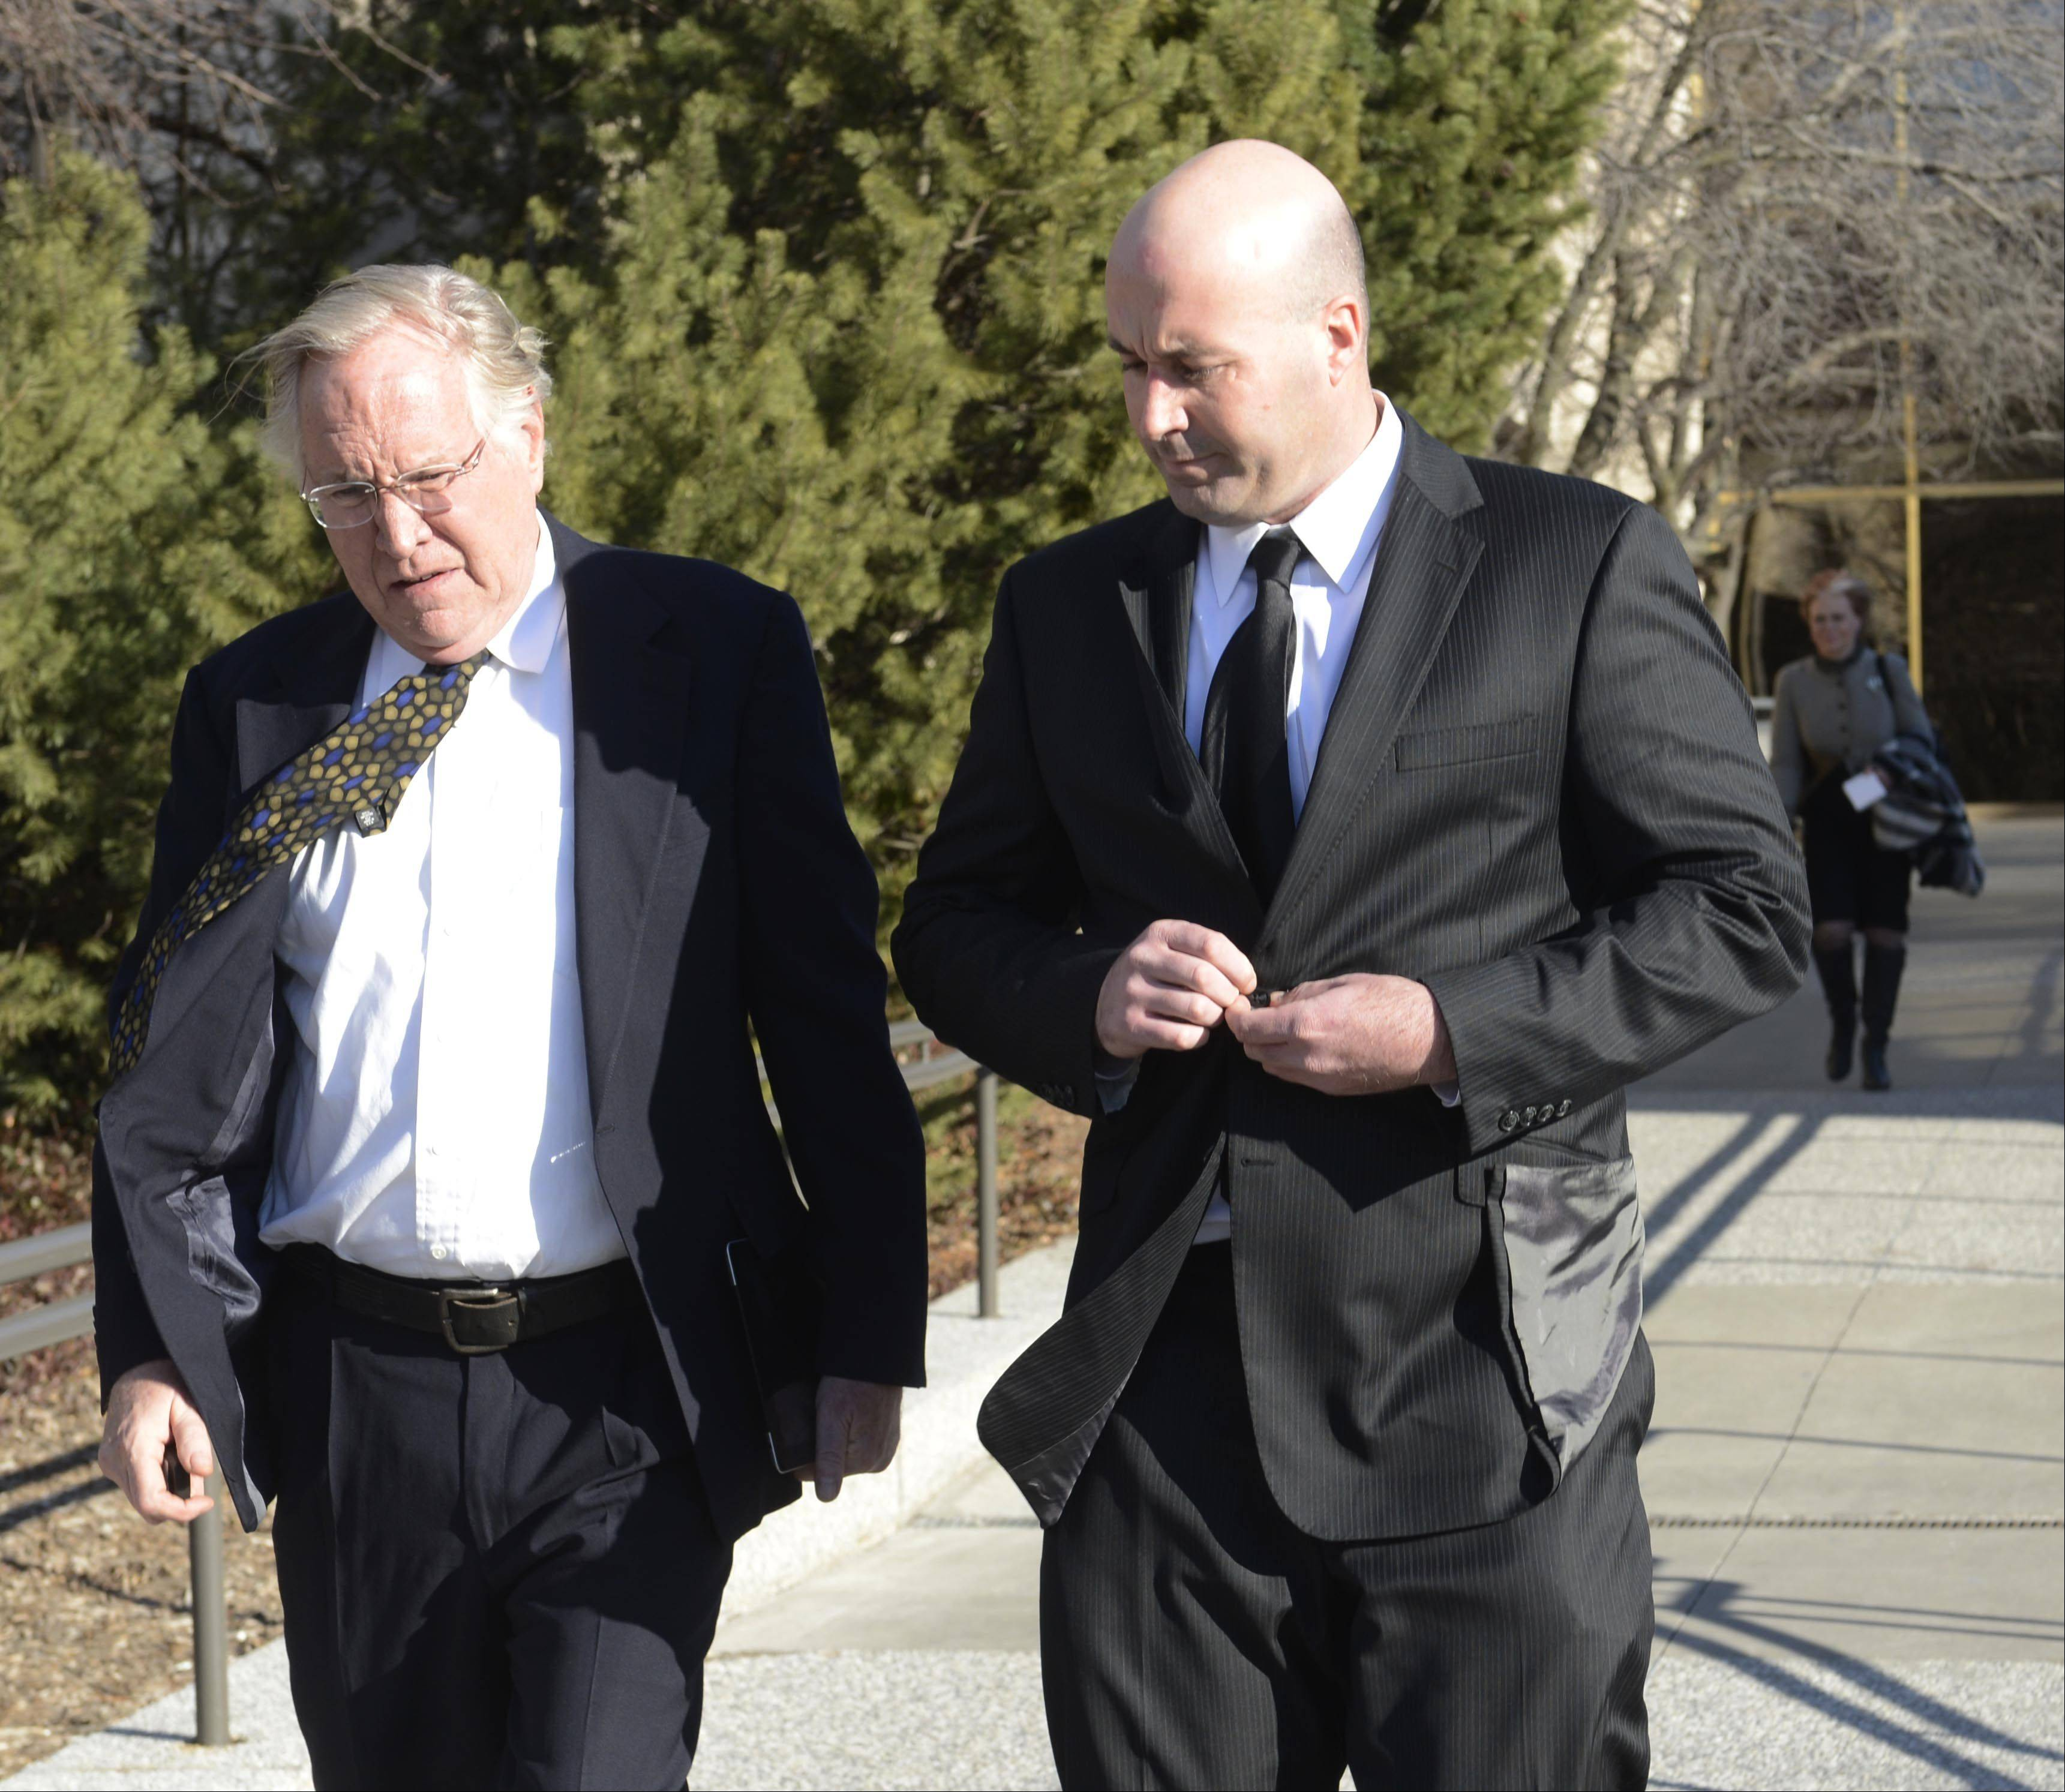 Richard Vanecko, right, who has been charged with involuntary manslaughter in the 2004 death of David Koschman of Mount Prospect, leaves the Rolling Meadows courthouse with one of his attorneys, Terence Gillespie, after a hearing Friday.